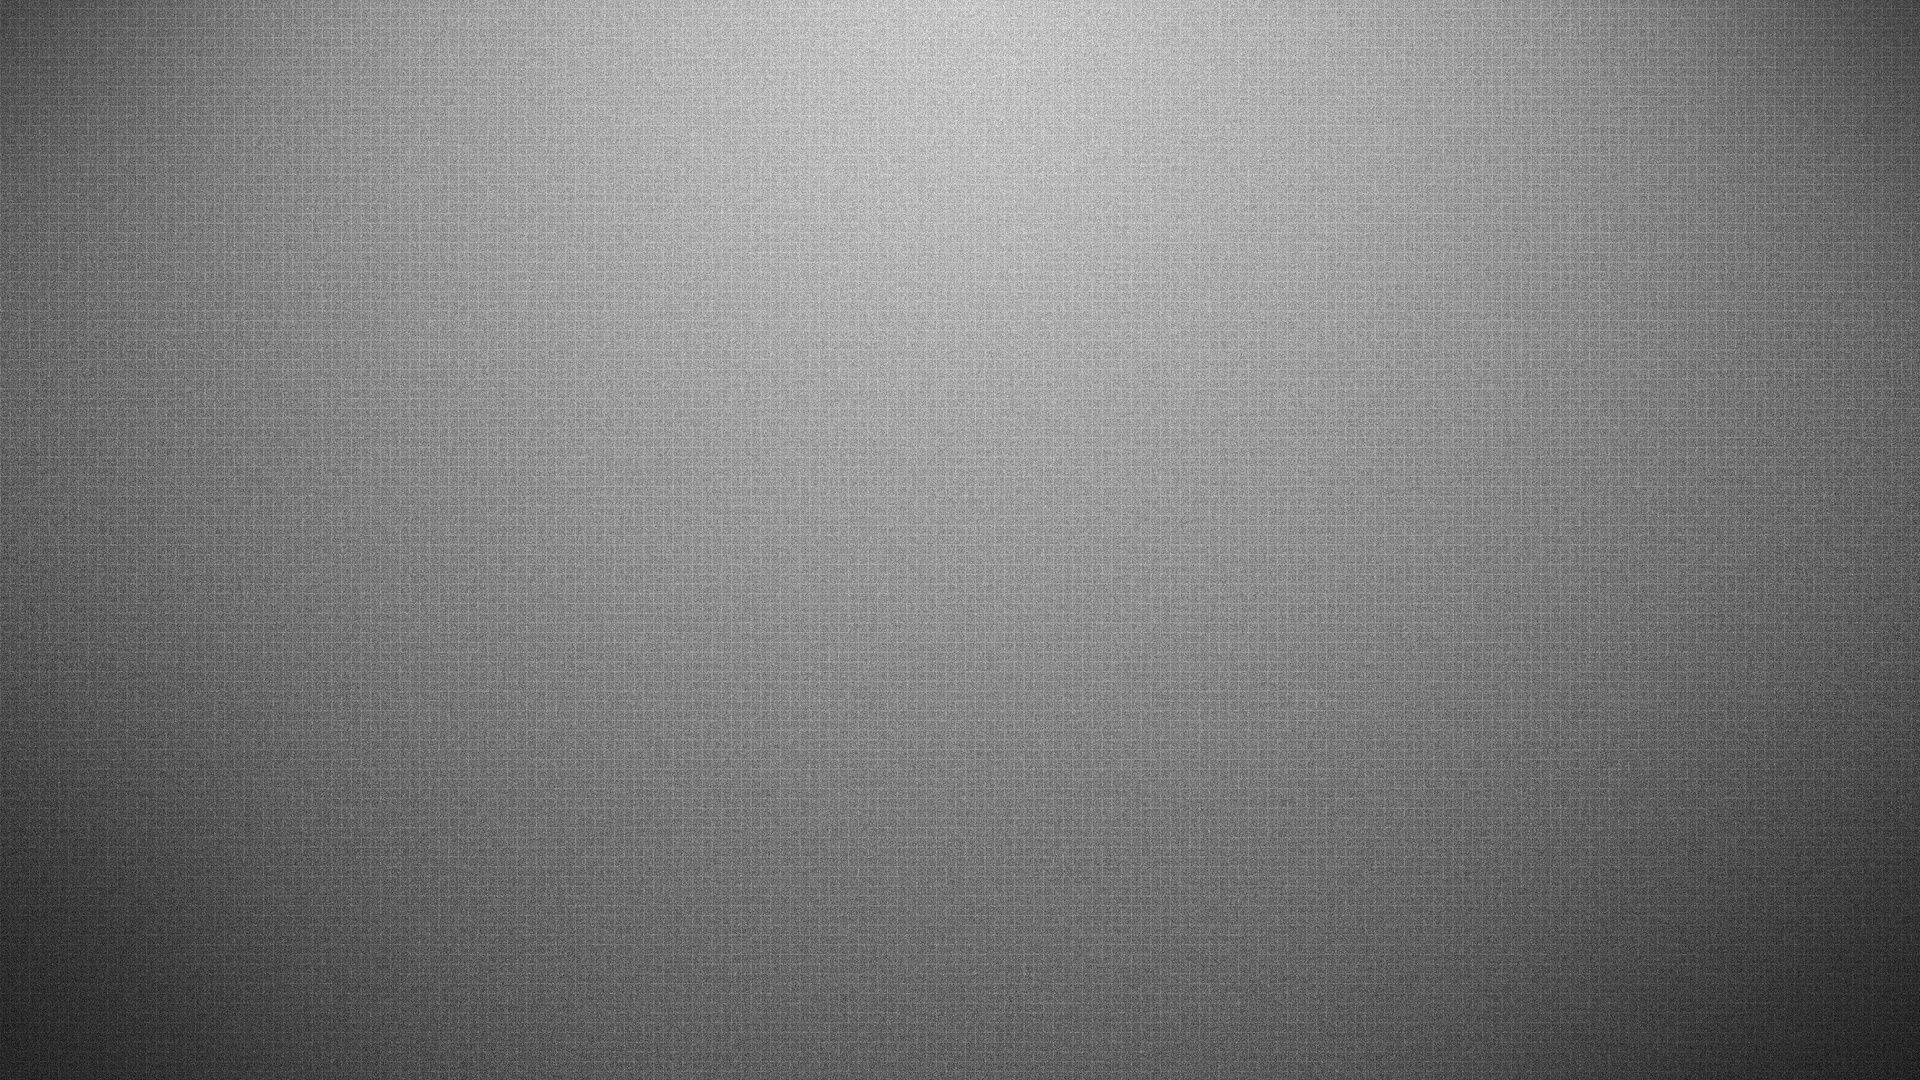 Related Image Grey Wallpaper Grey Wallpaper Background Gray Background